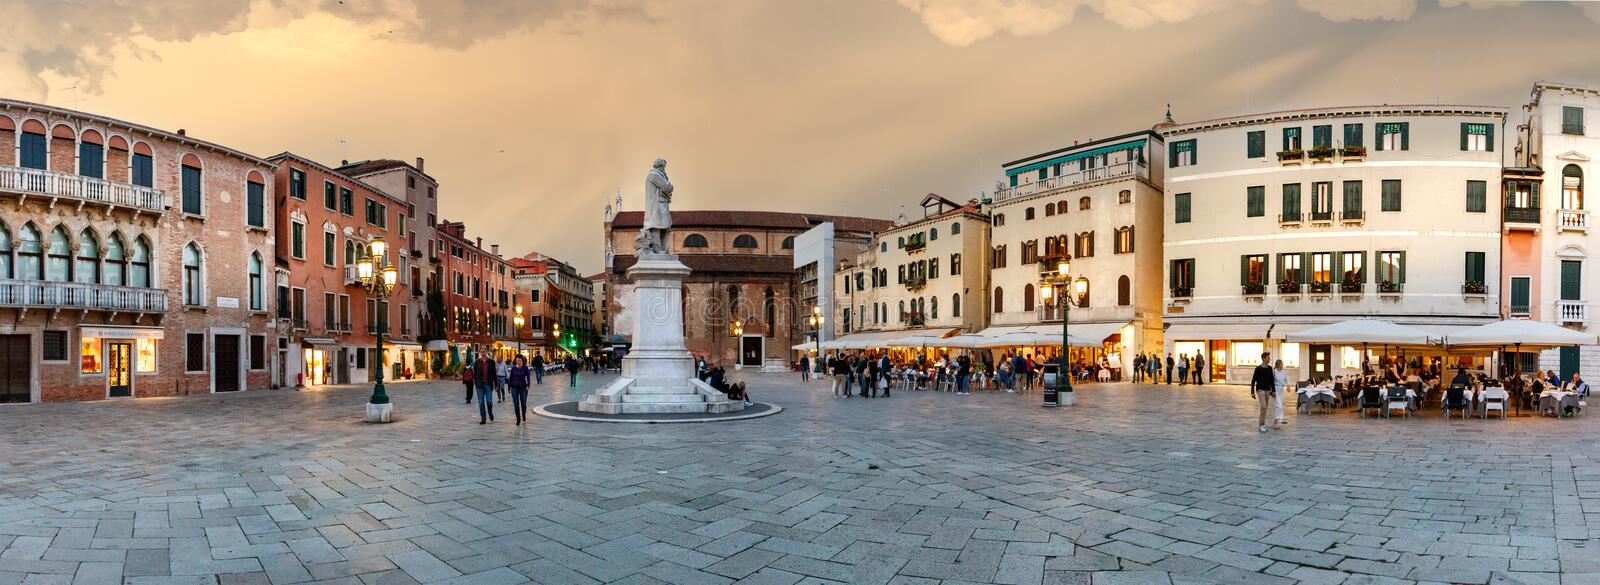 Panorama of the St. Stephen`s square and the statue of Nicolo Tommaseo in Venice at evening, Italy stock photo